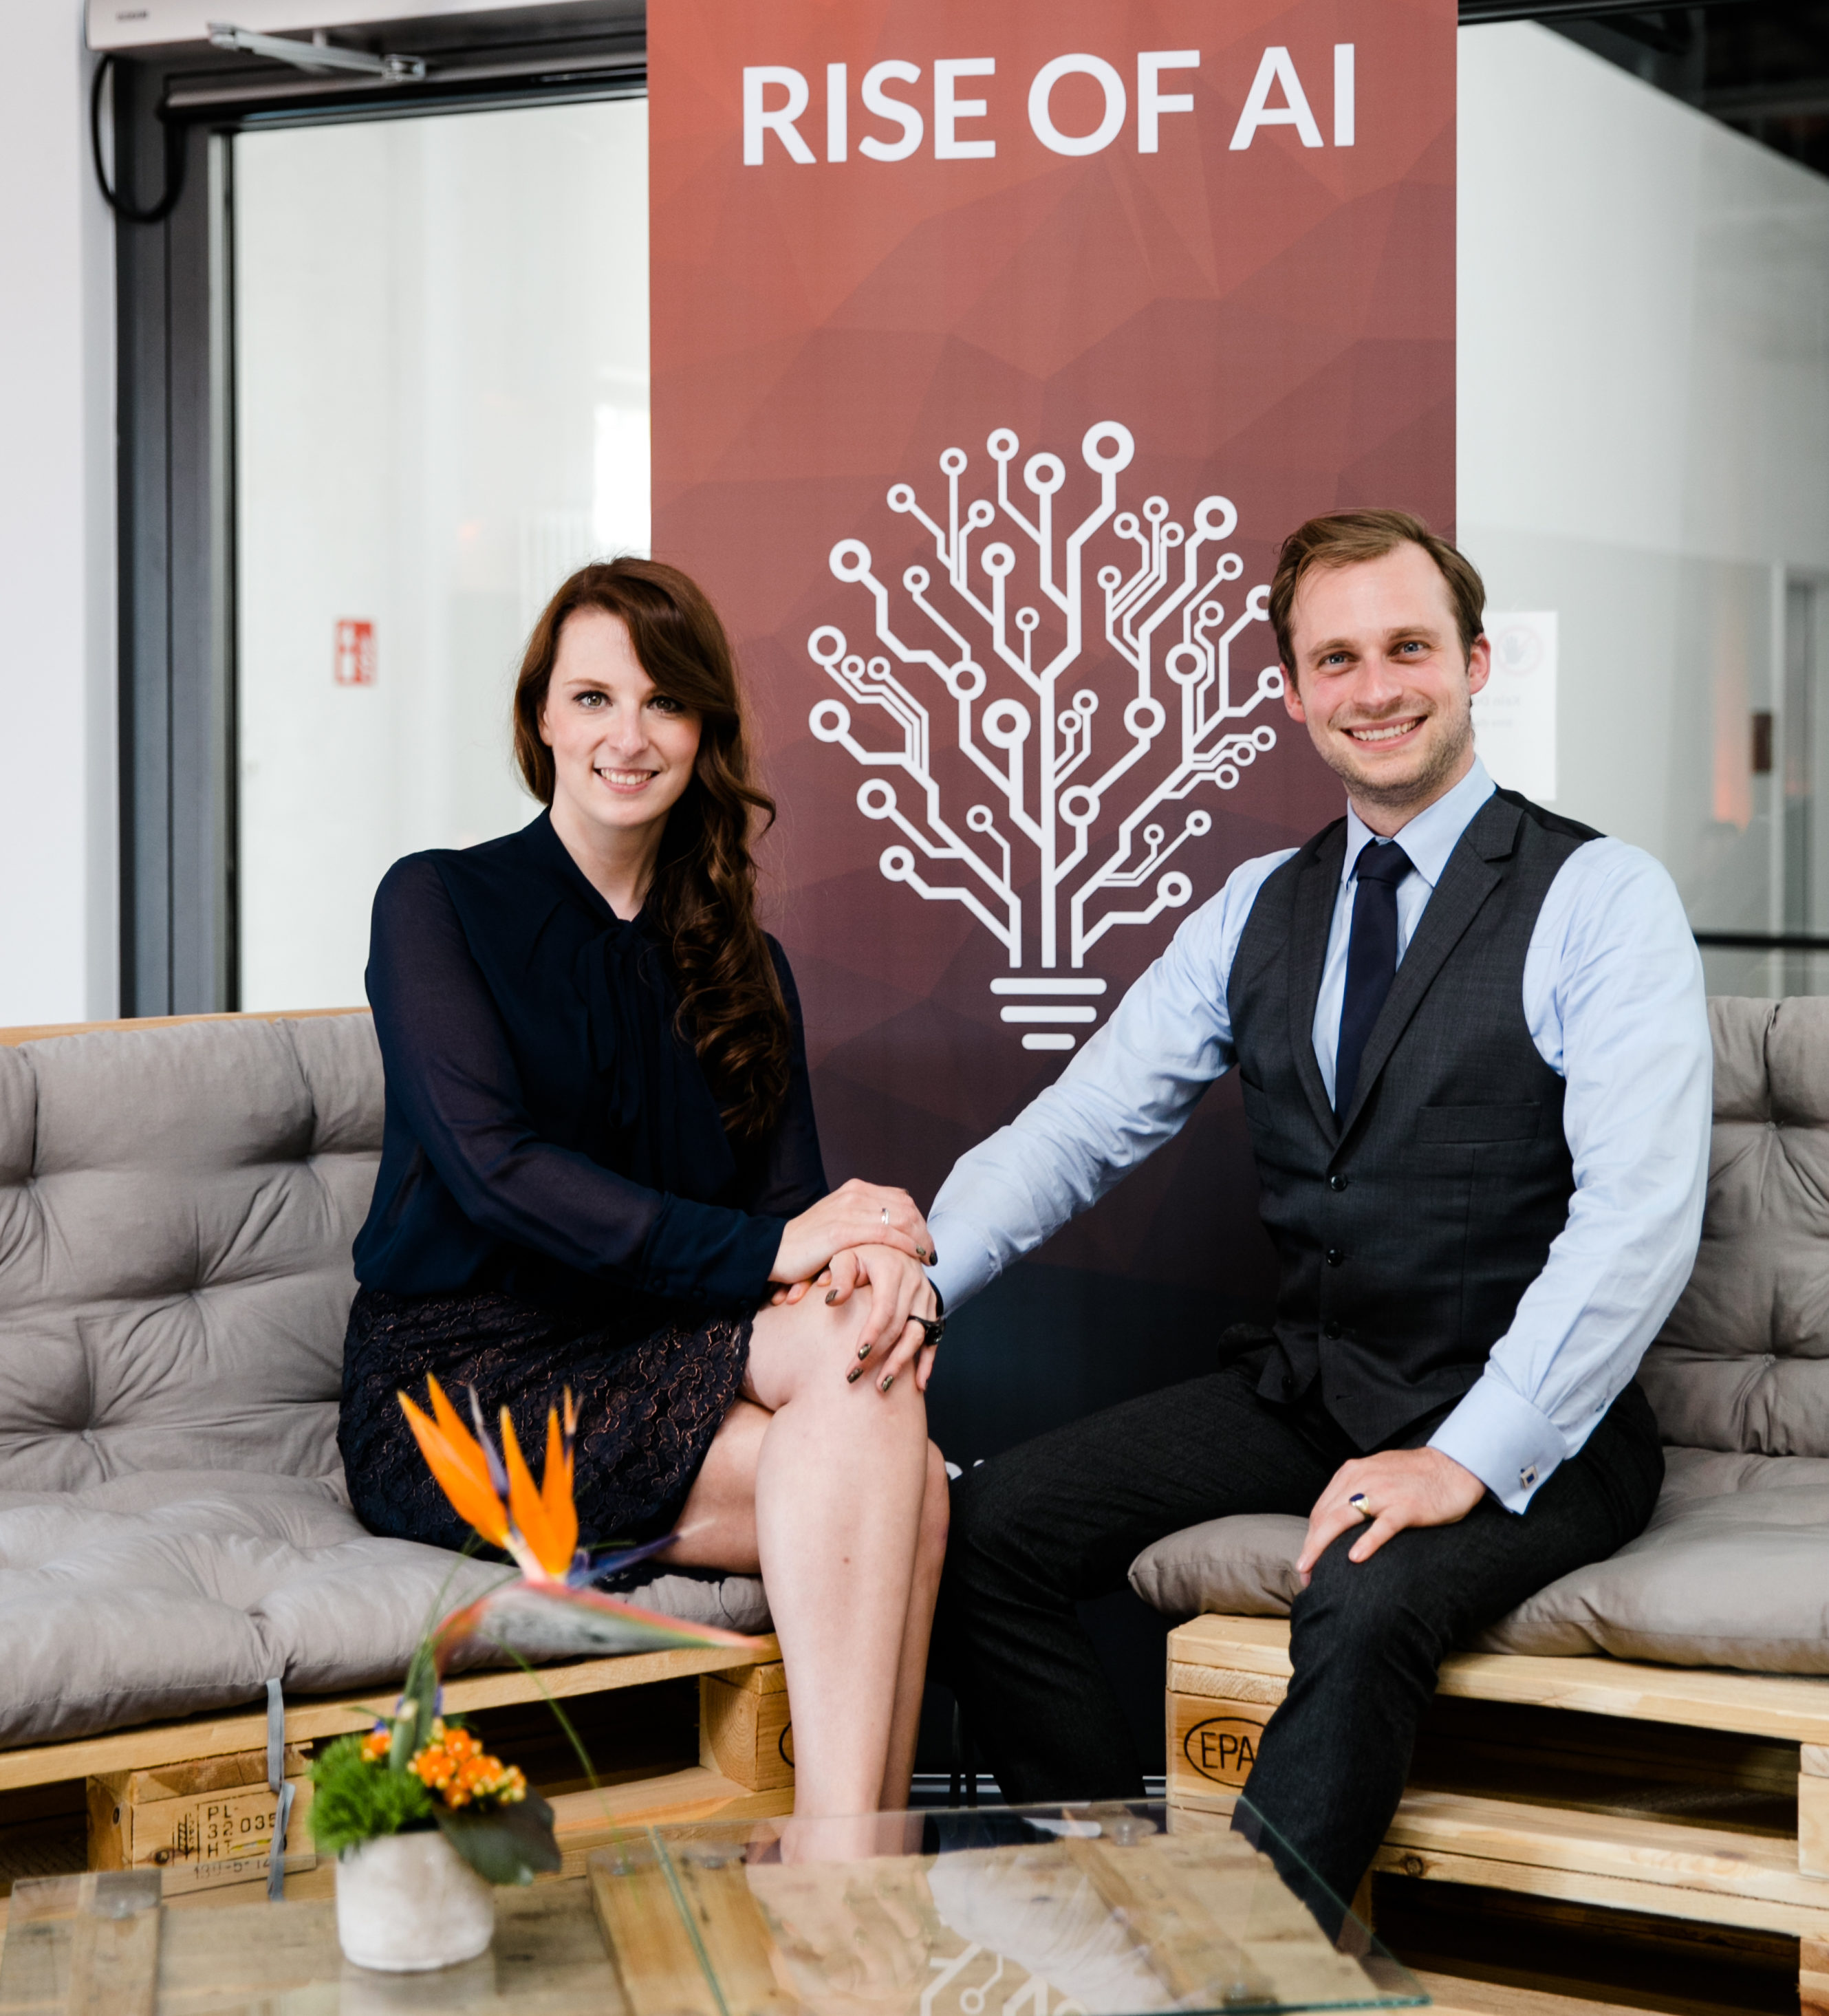 Veronika and Fabian Westerheide - Rise of AI